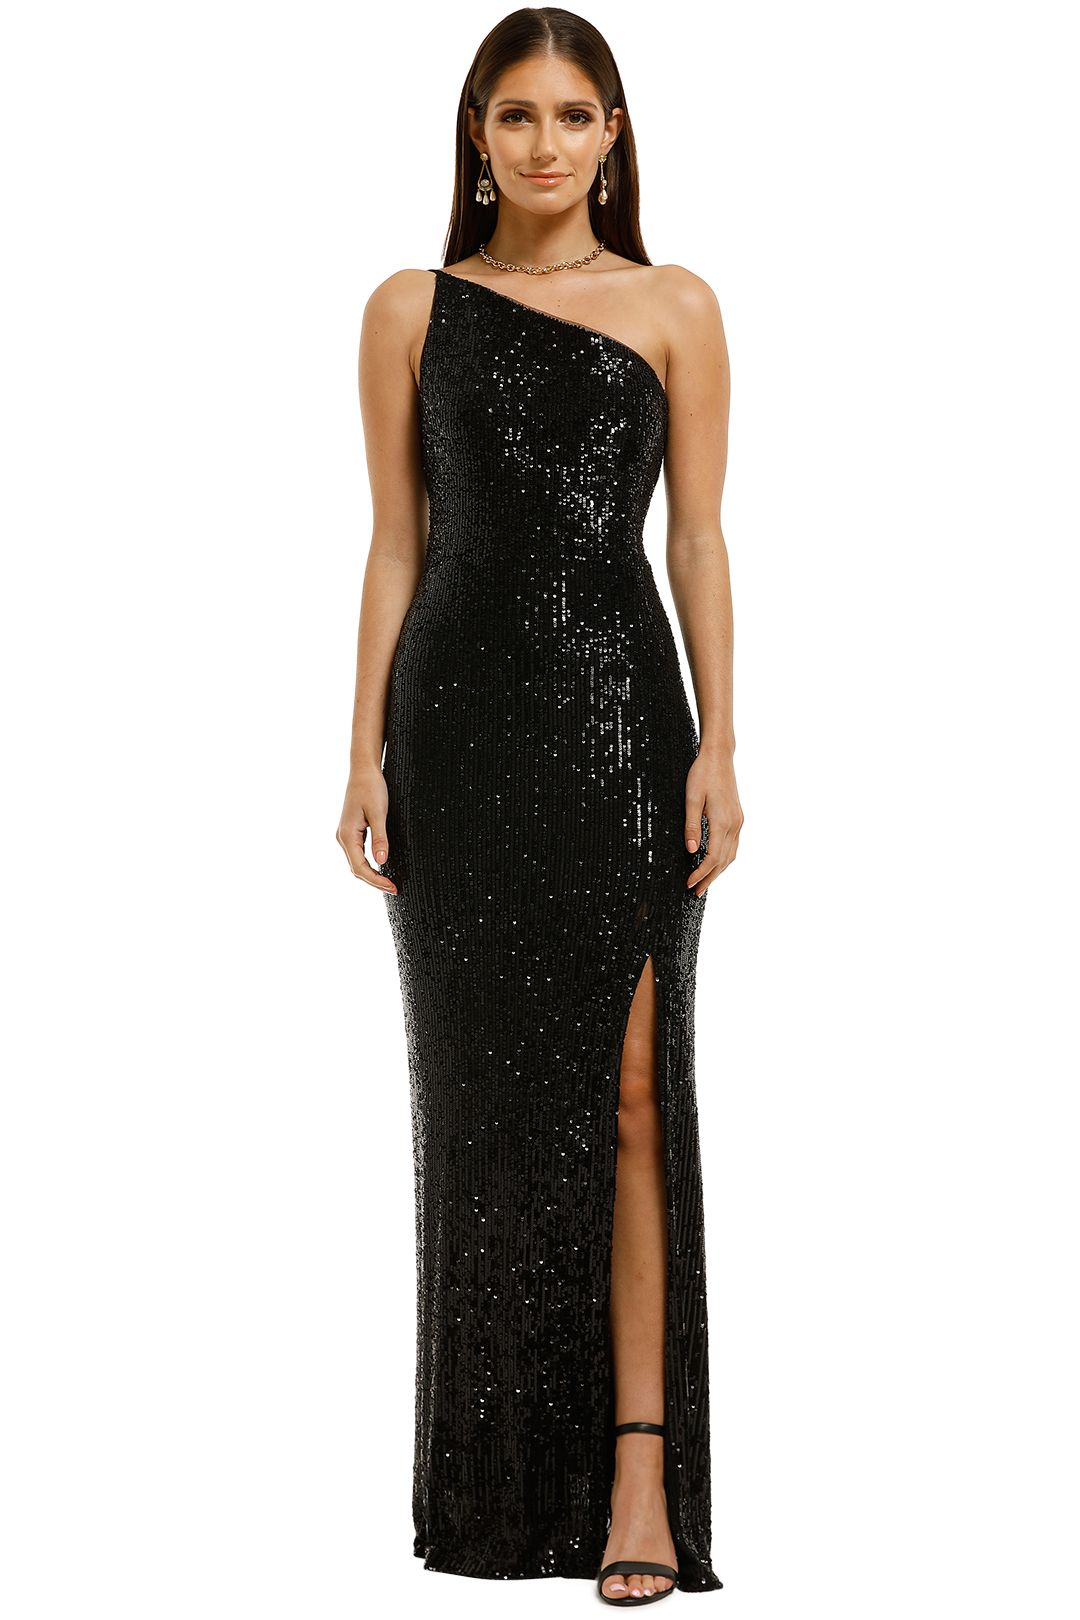 Montique-Elle-Sequin-Black-Gown-Black-Front